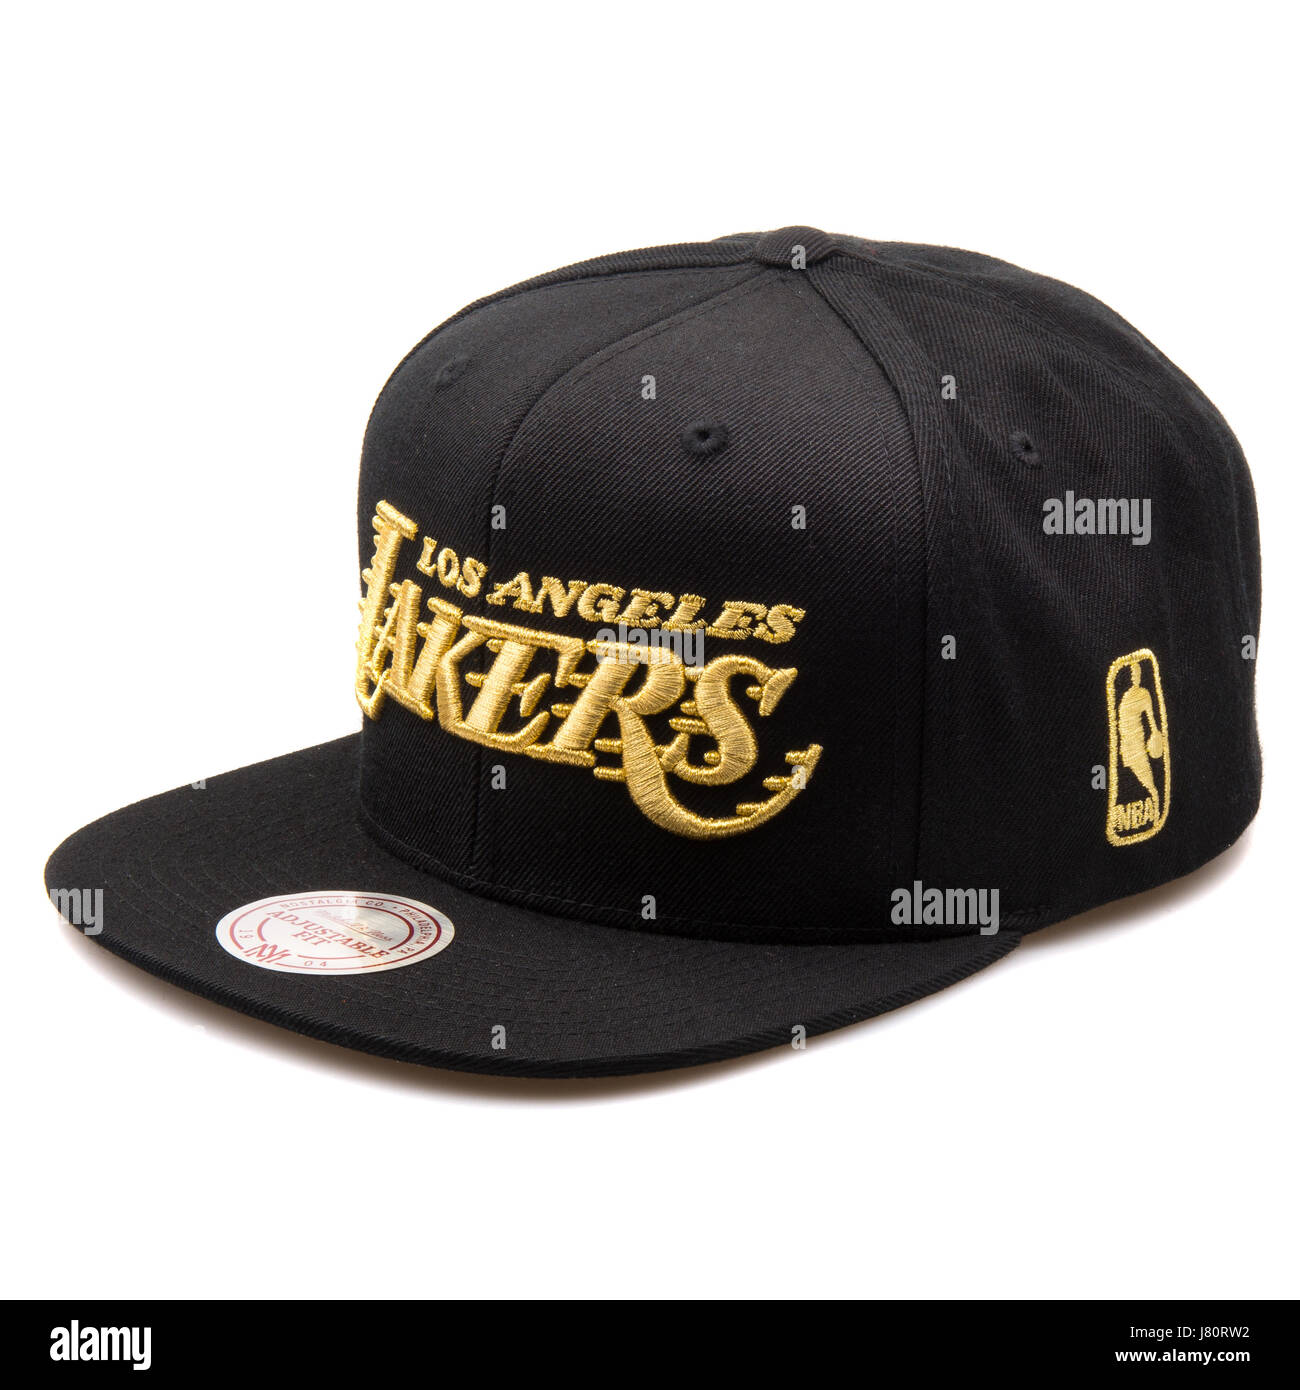 Mitchell   Ness Black and Gold Los Angeles Lakers Cap Stock Photo ... 5dceae8cd11